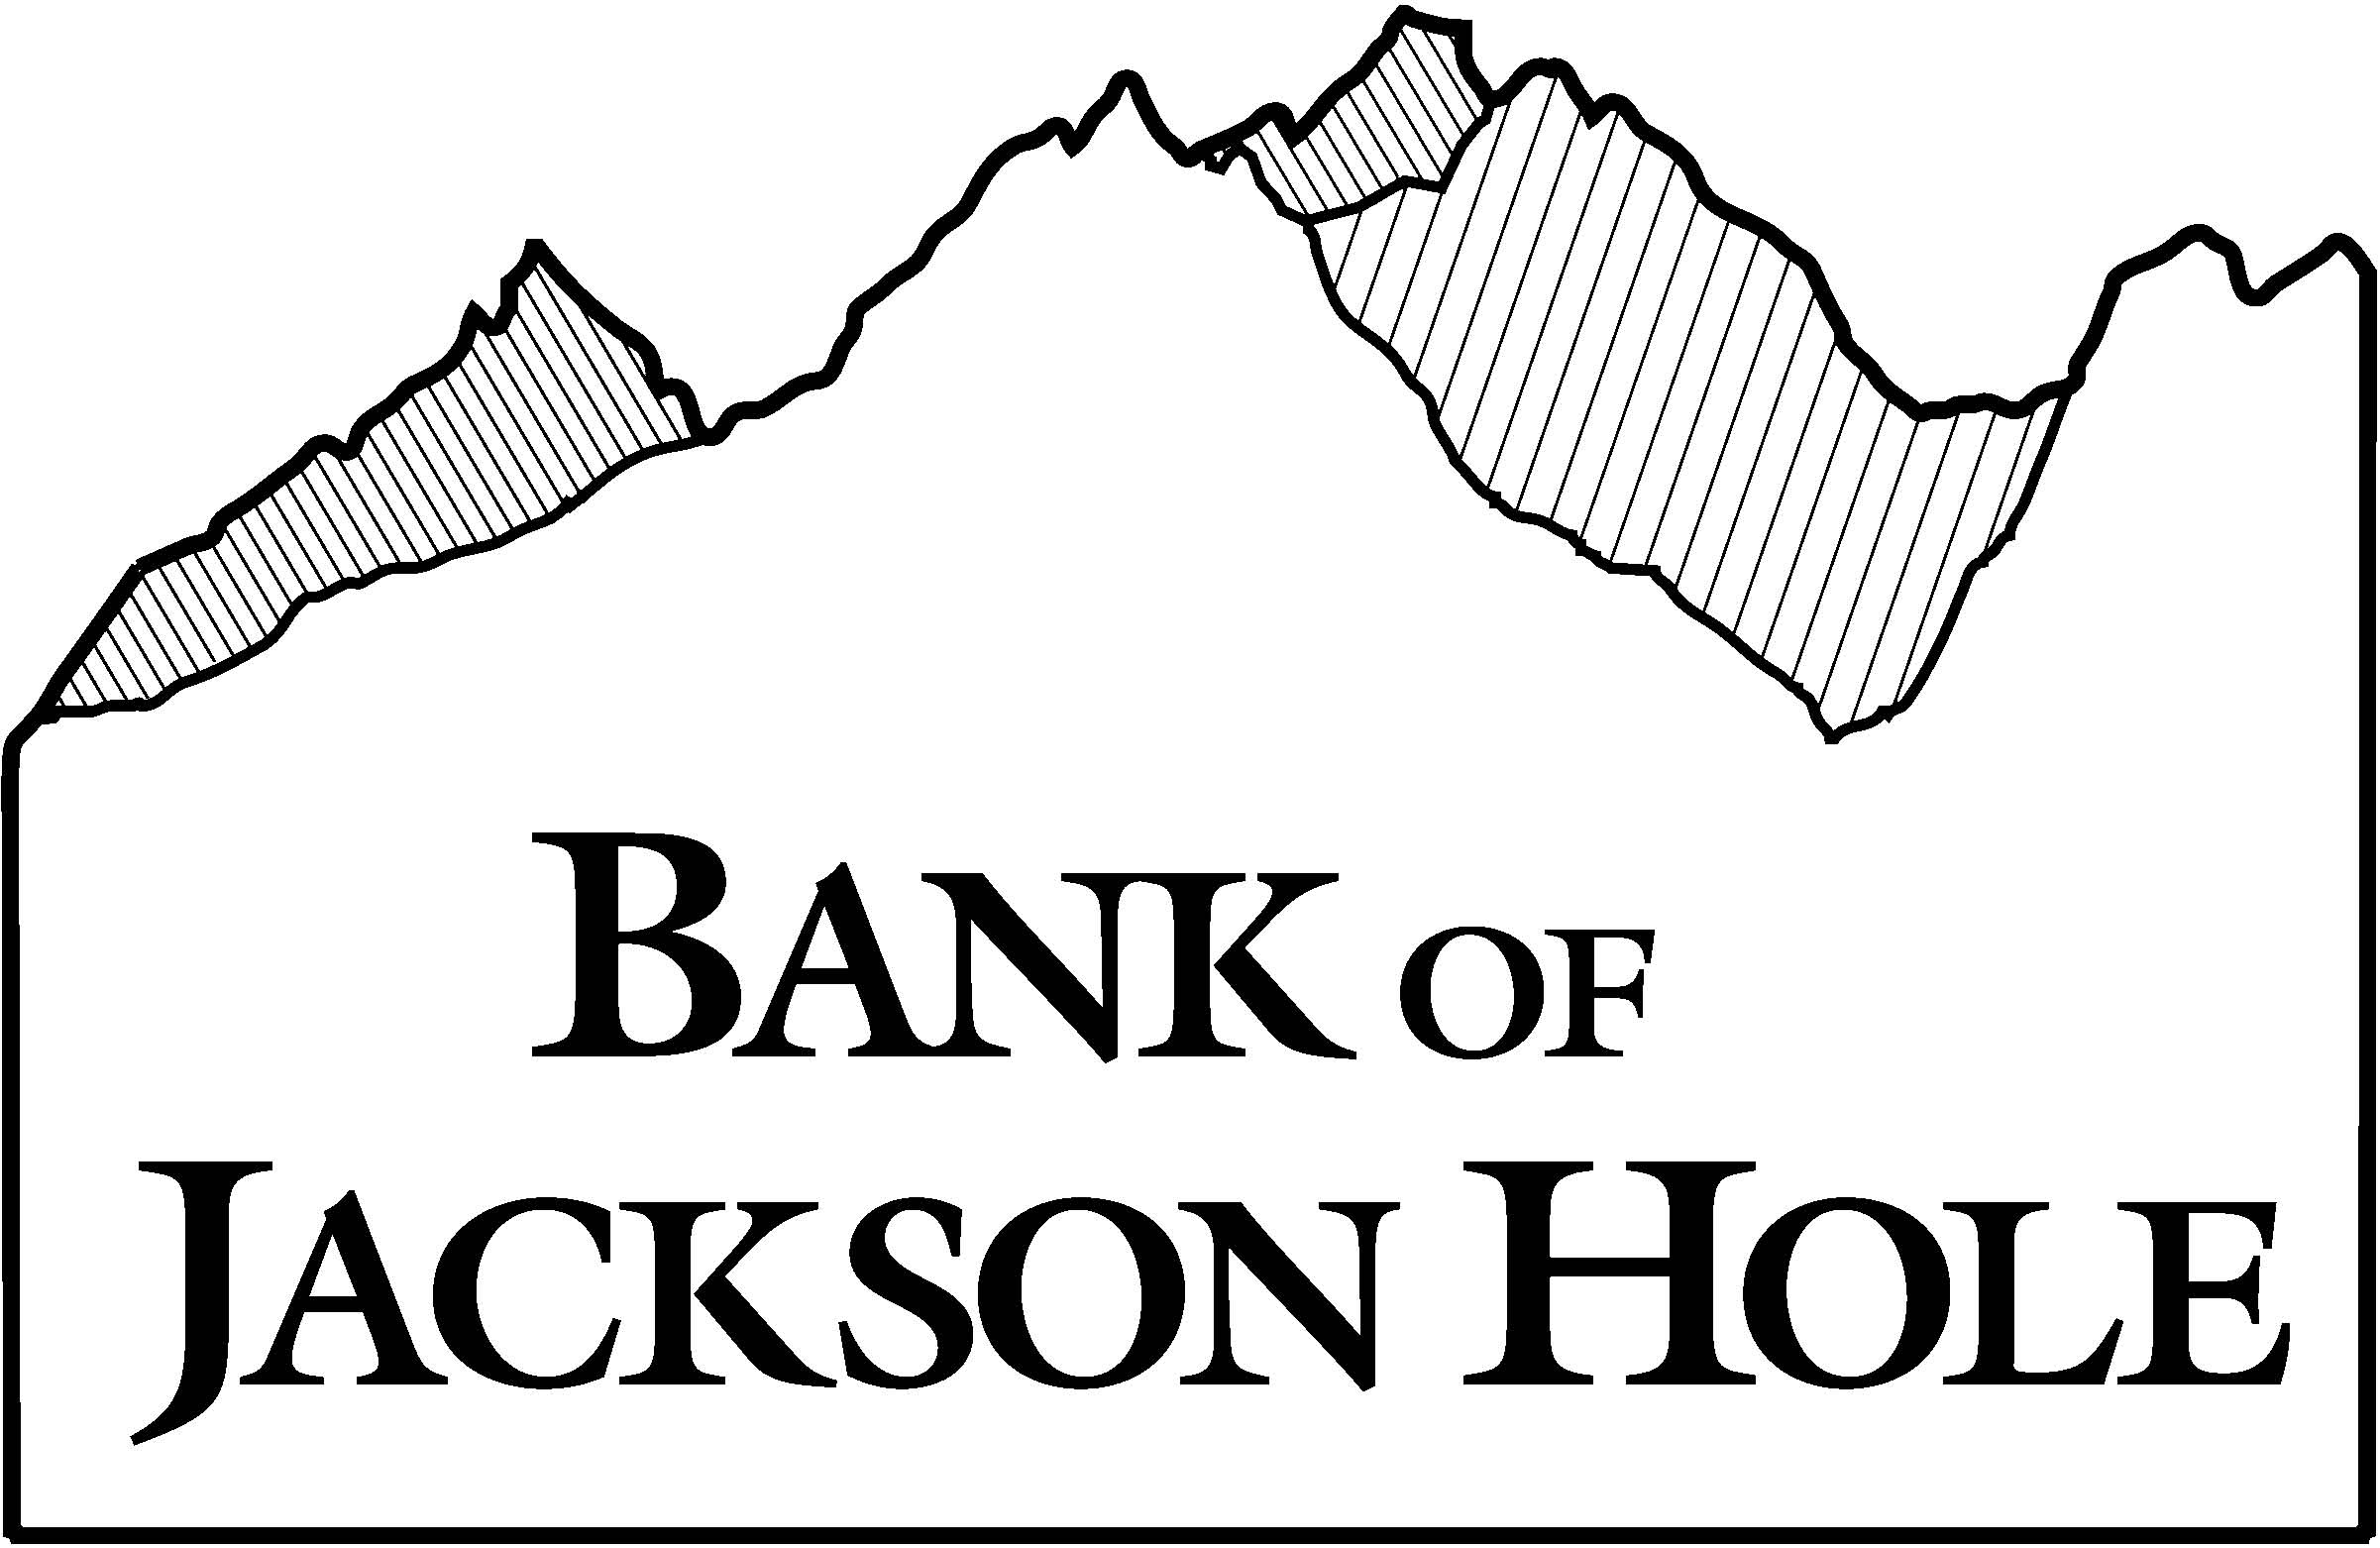 Bank of Jackson Hole.jpg